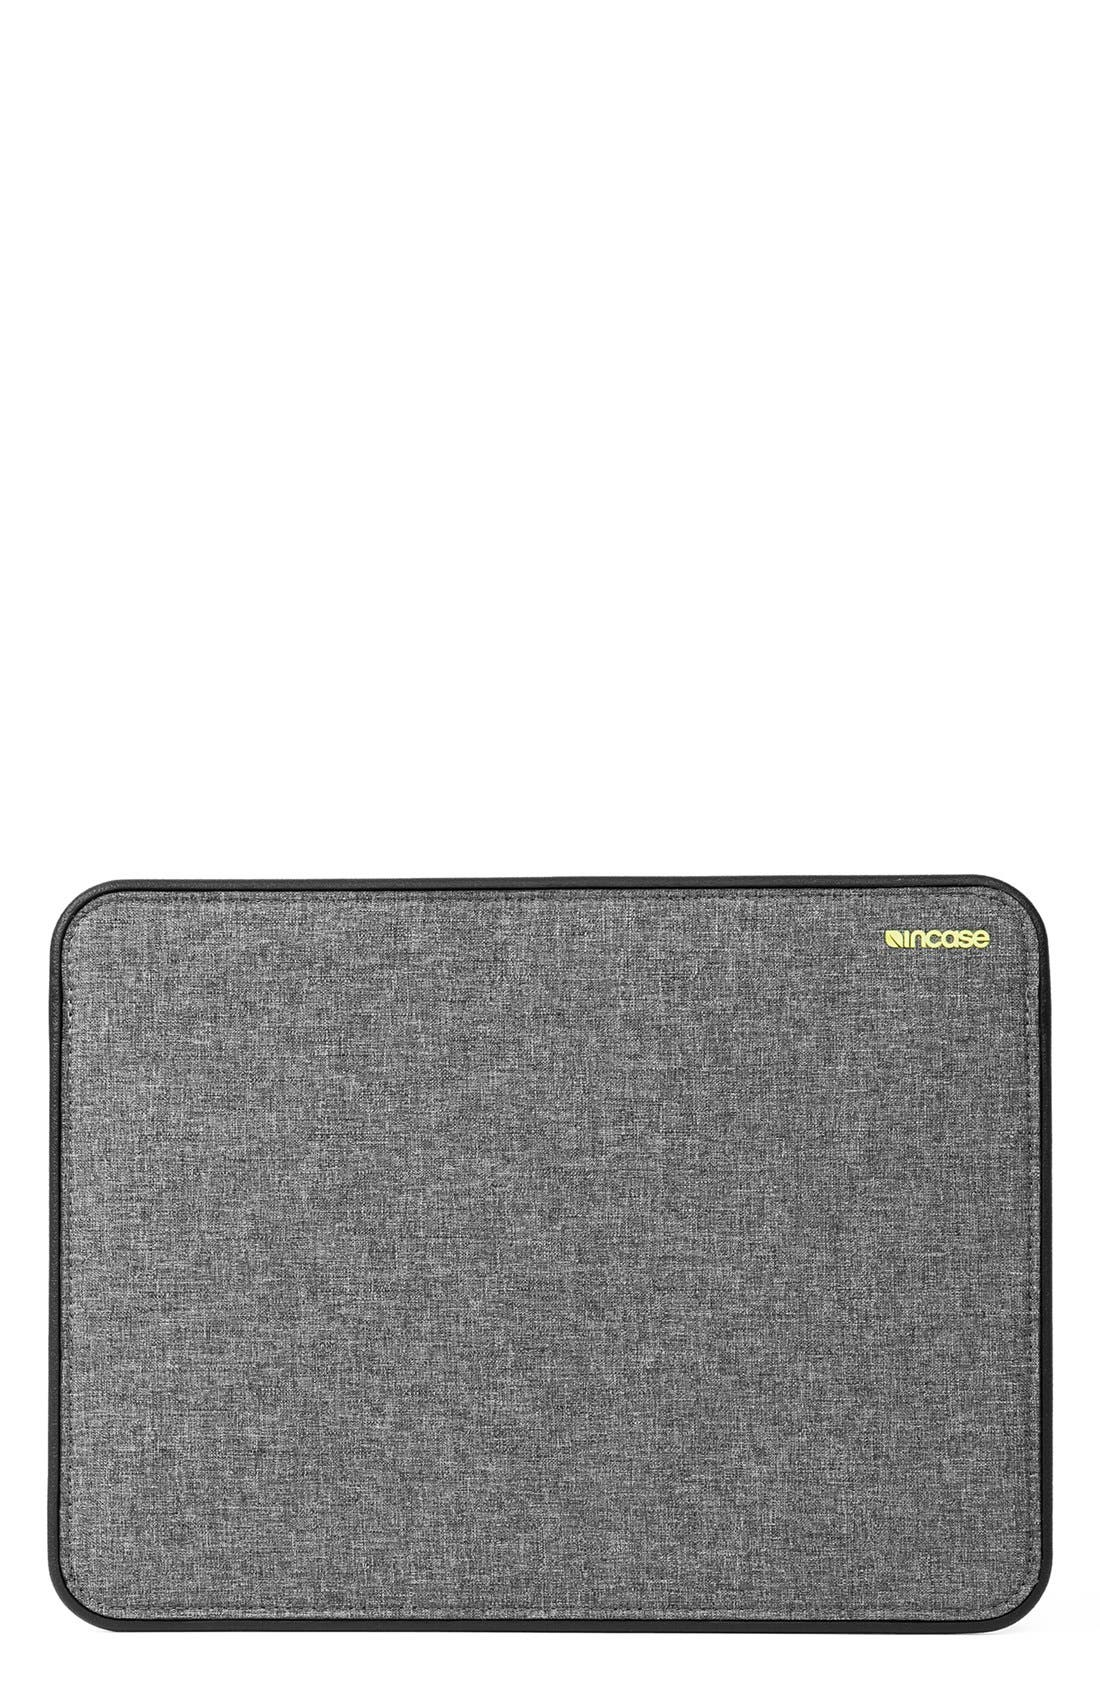 Incase Designs 'Icon' MacBook Air Laptop Sleeve (13 Inch)